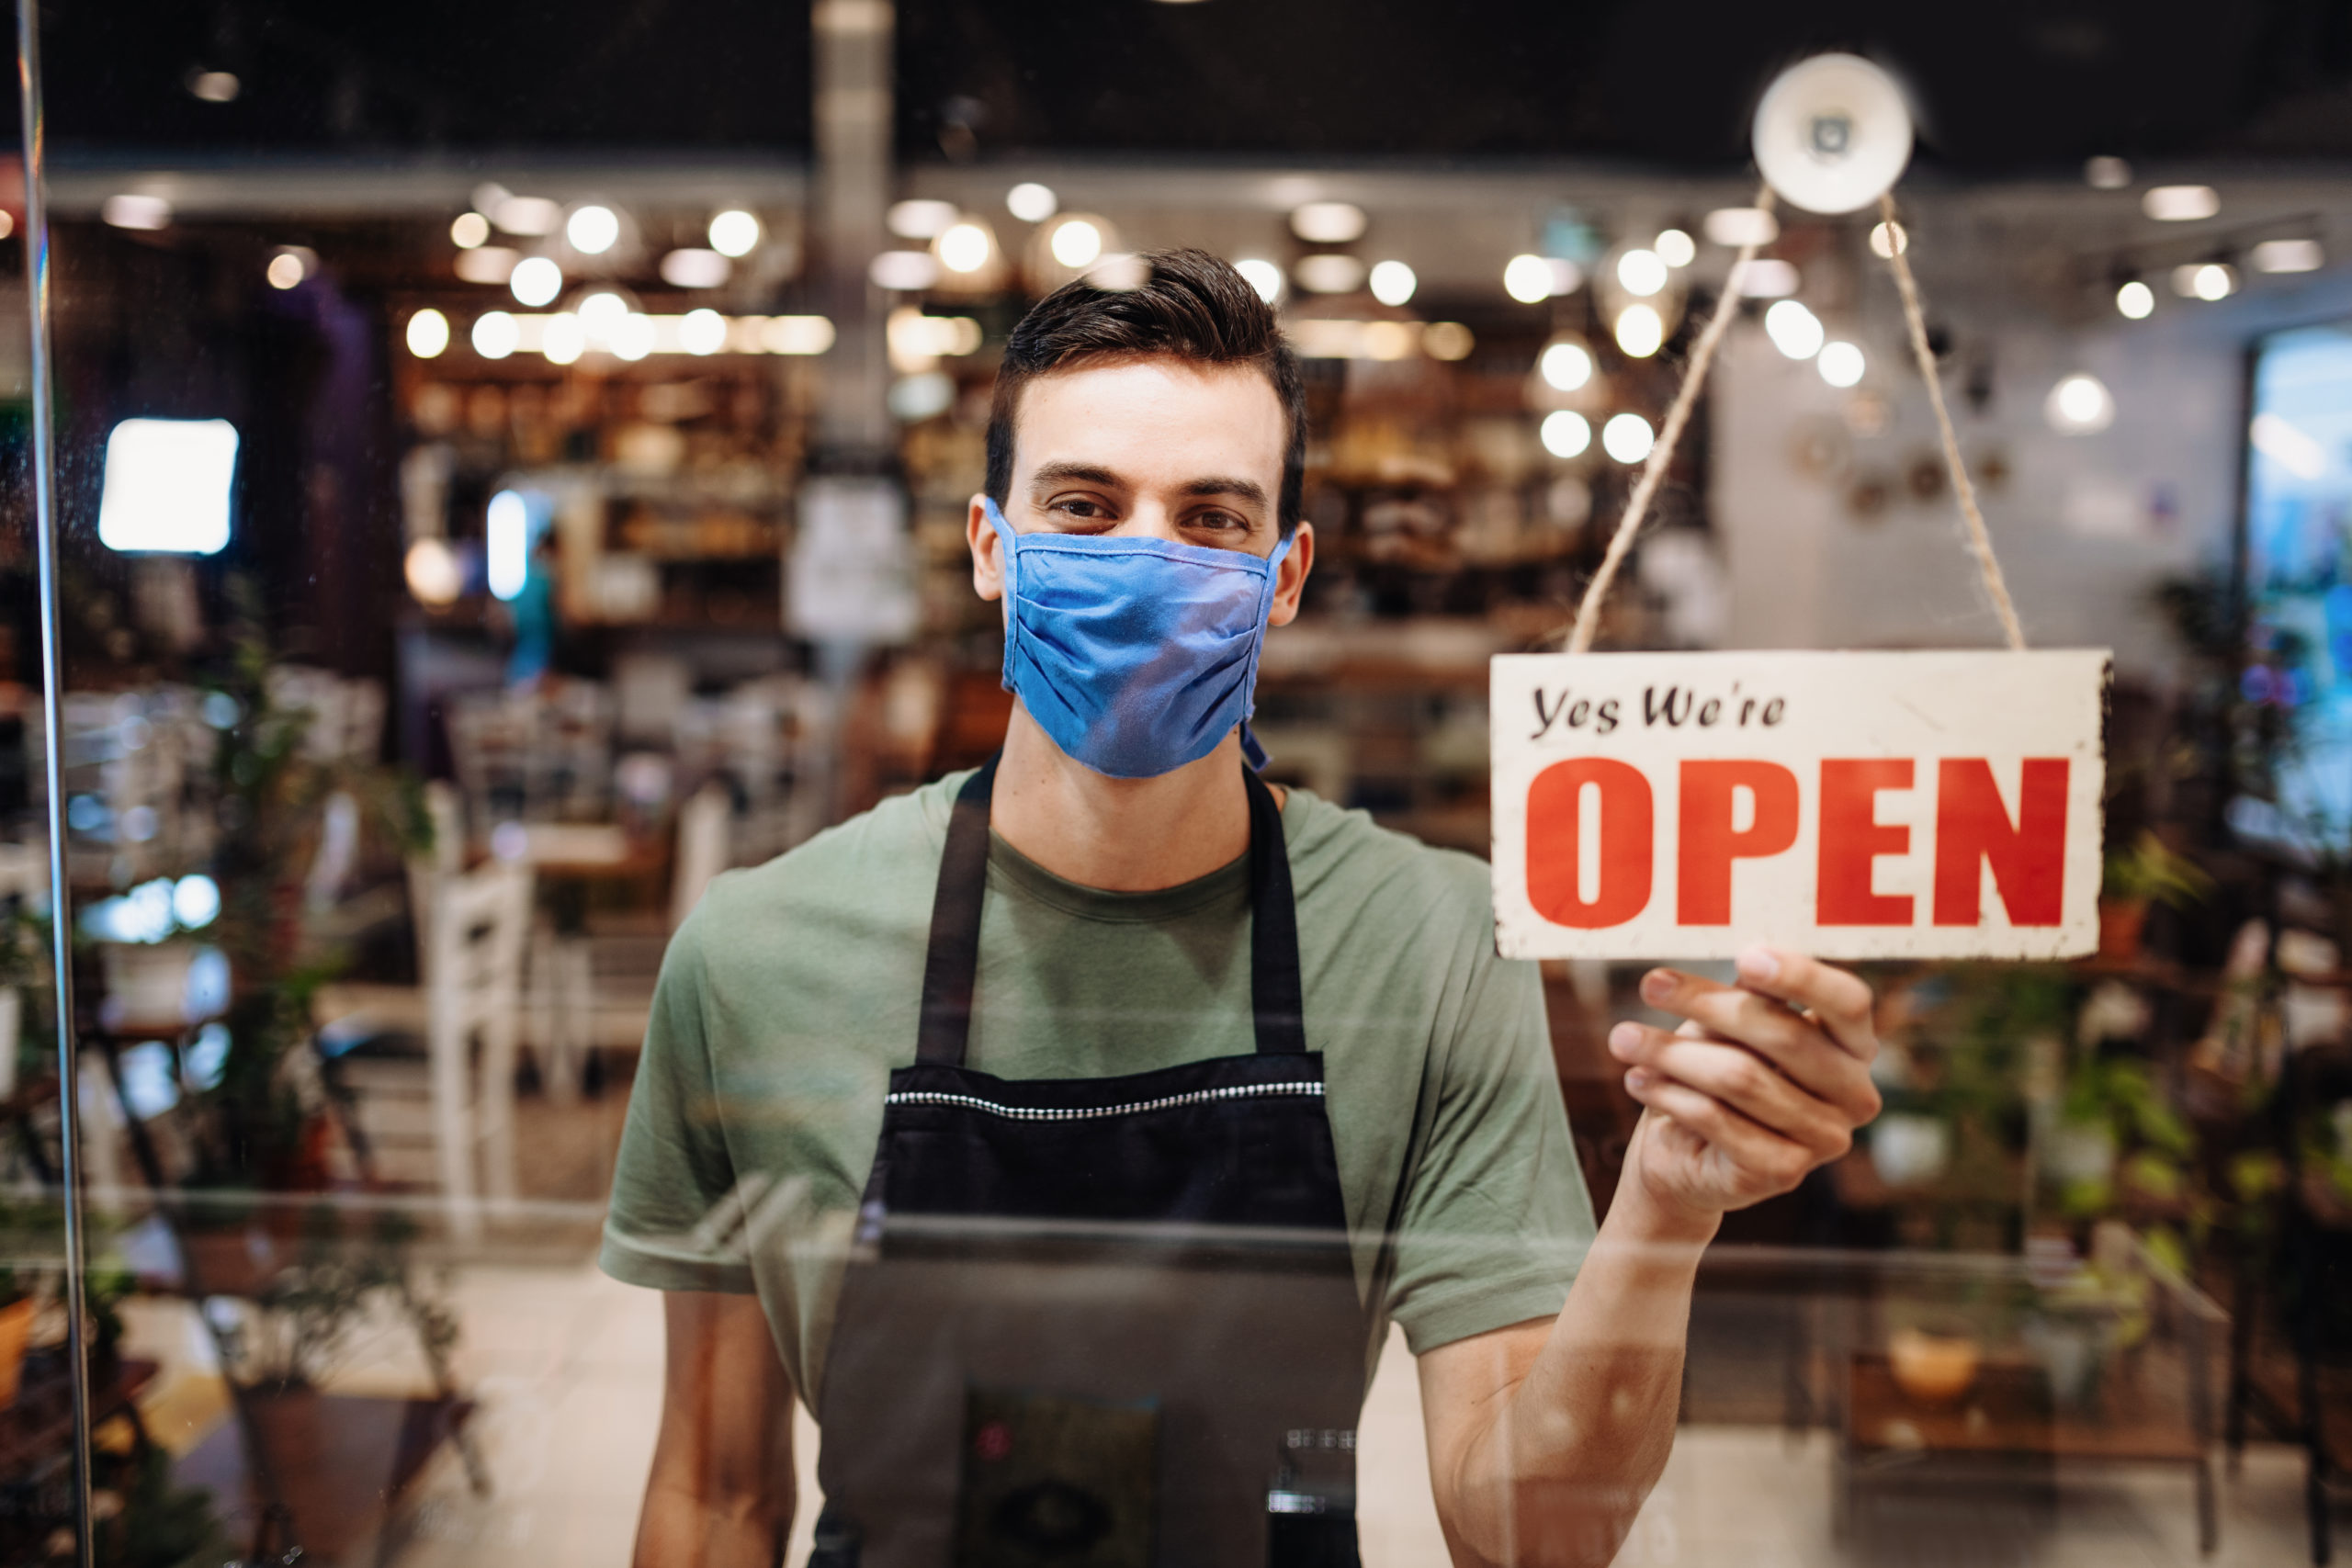 Cheerful young Latino waiter with face mask holding Open sign in cafe